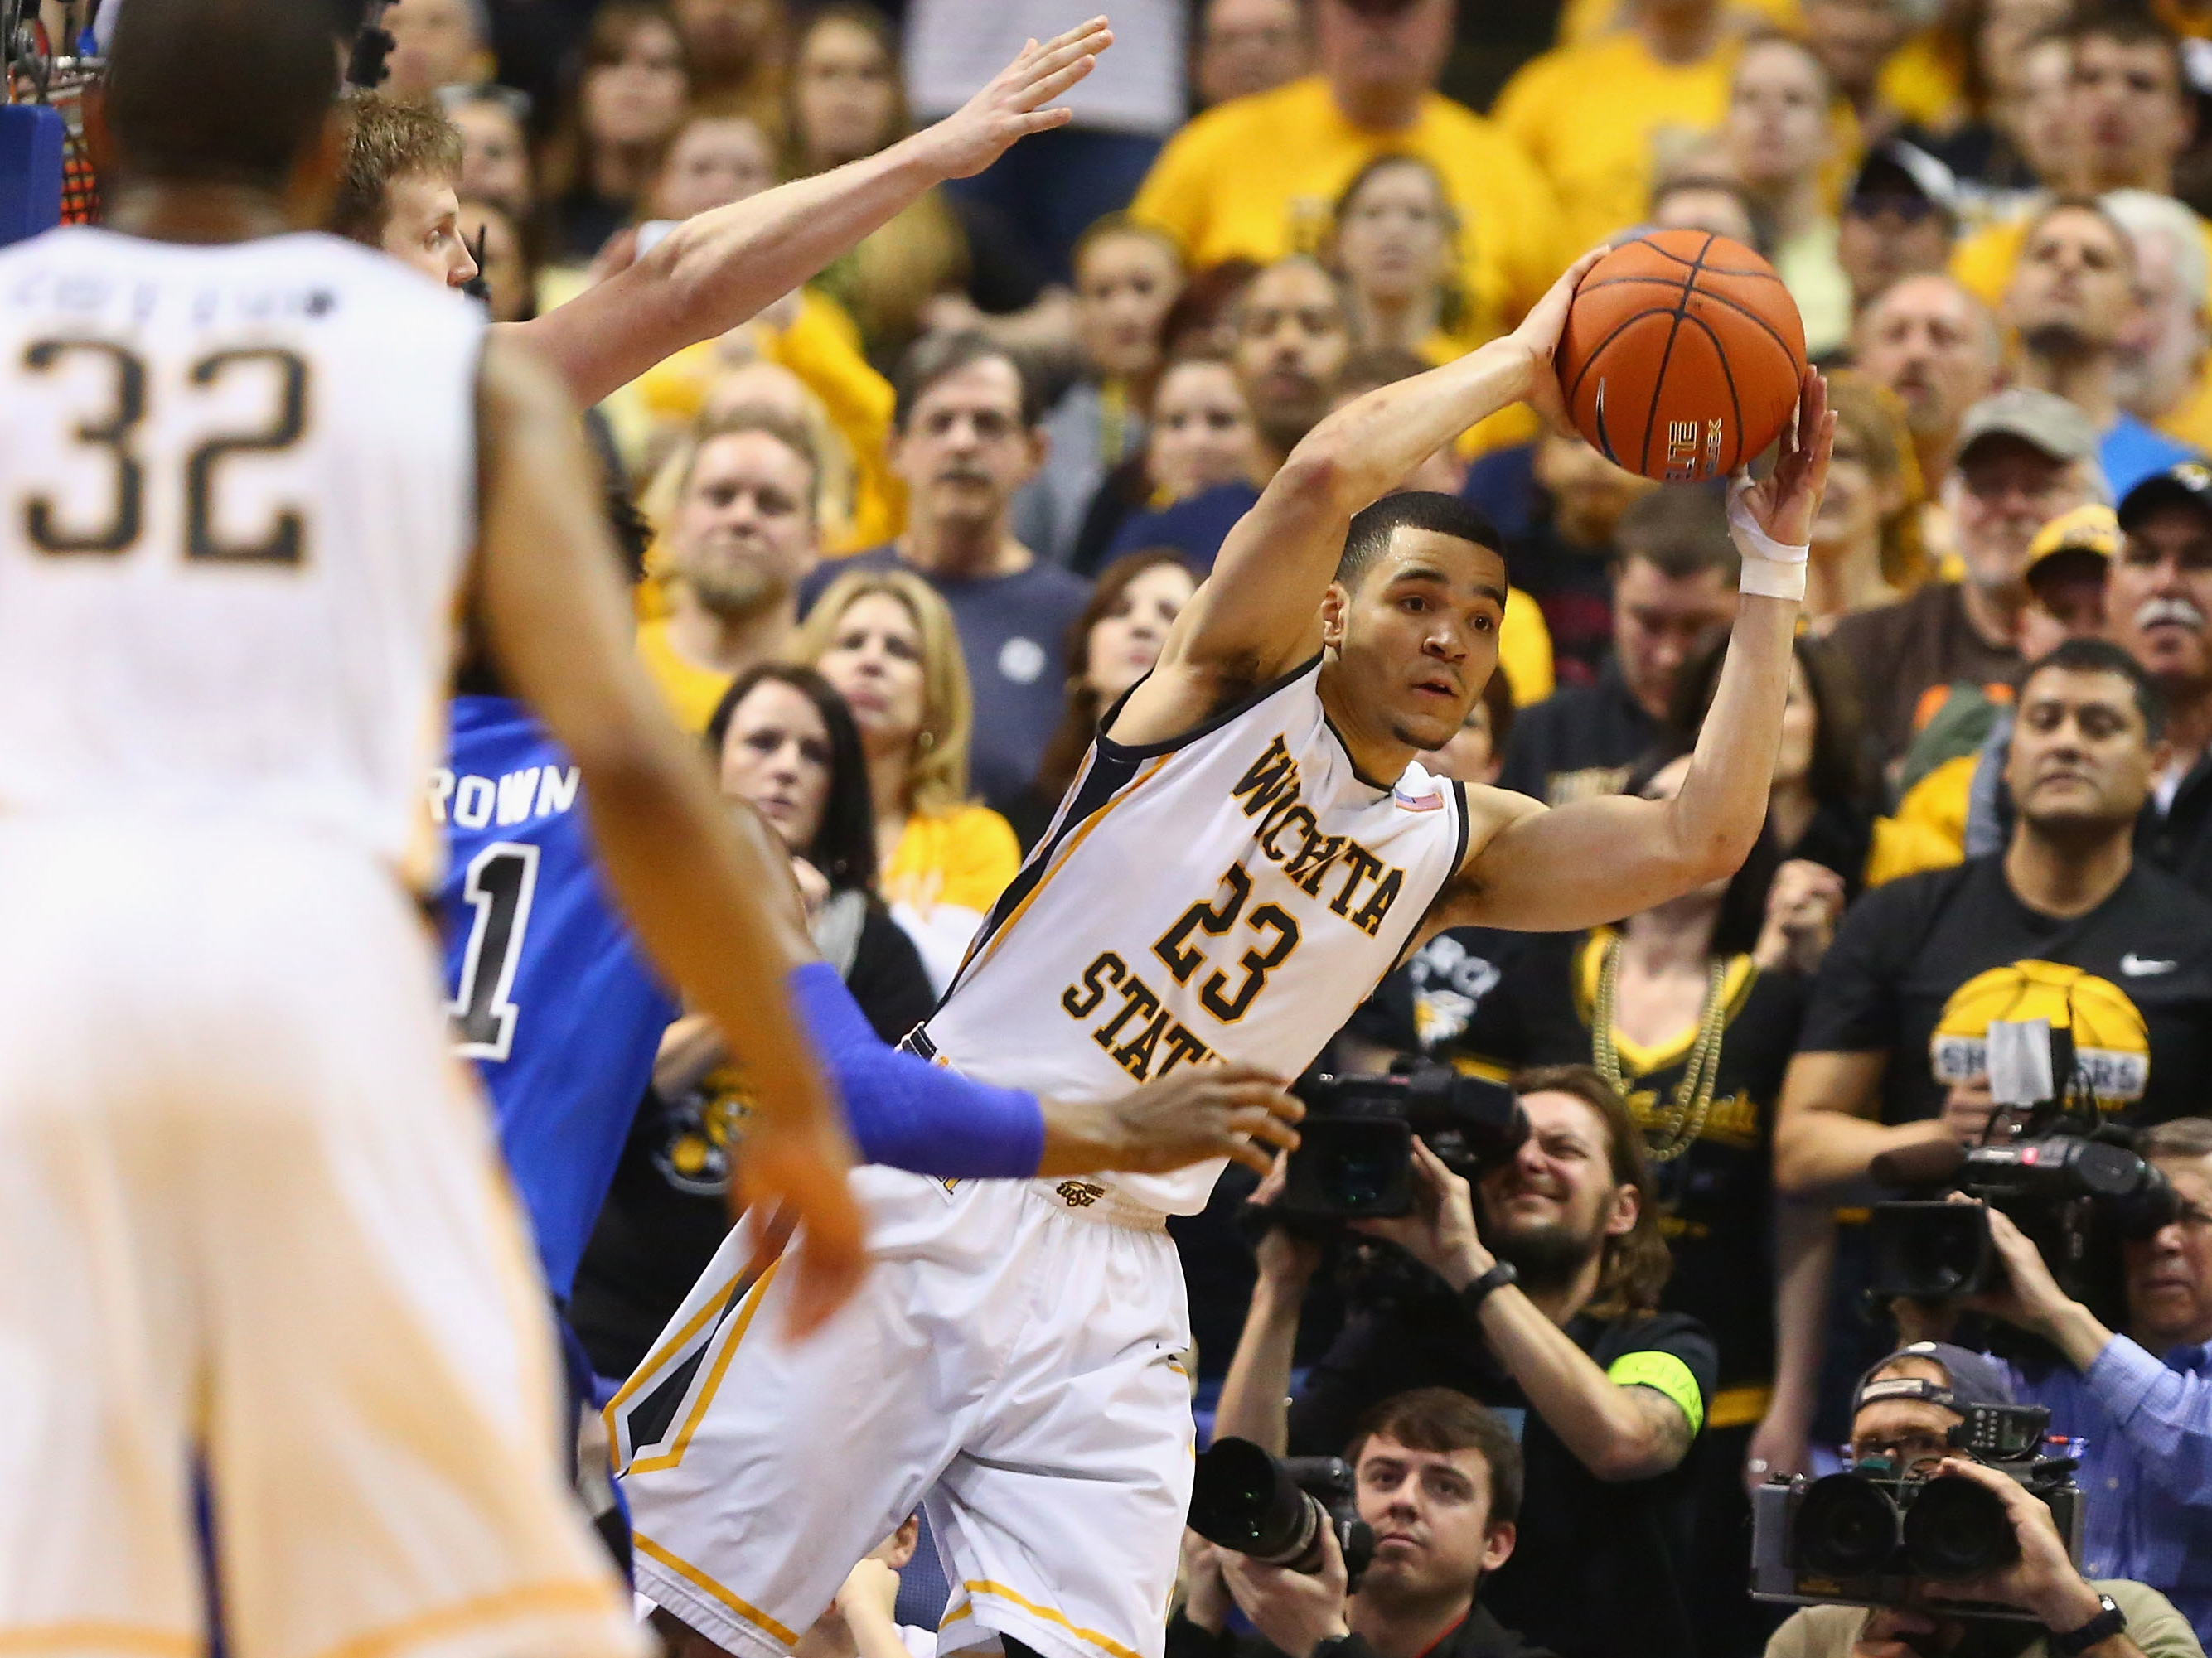 Fred VanVleet of Wichita State looks to pass the ball during the 2014 Missouri Valley Conference basketball tournament.